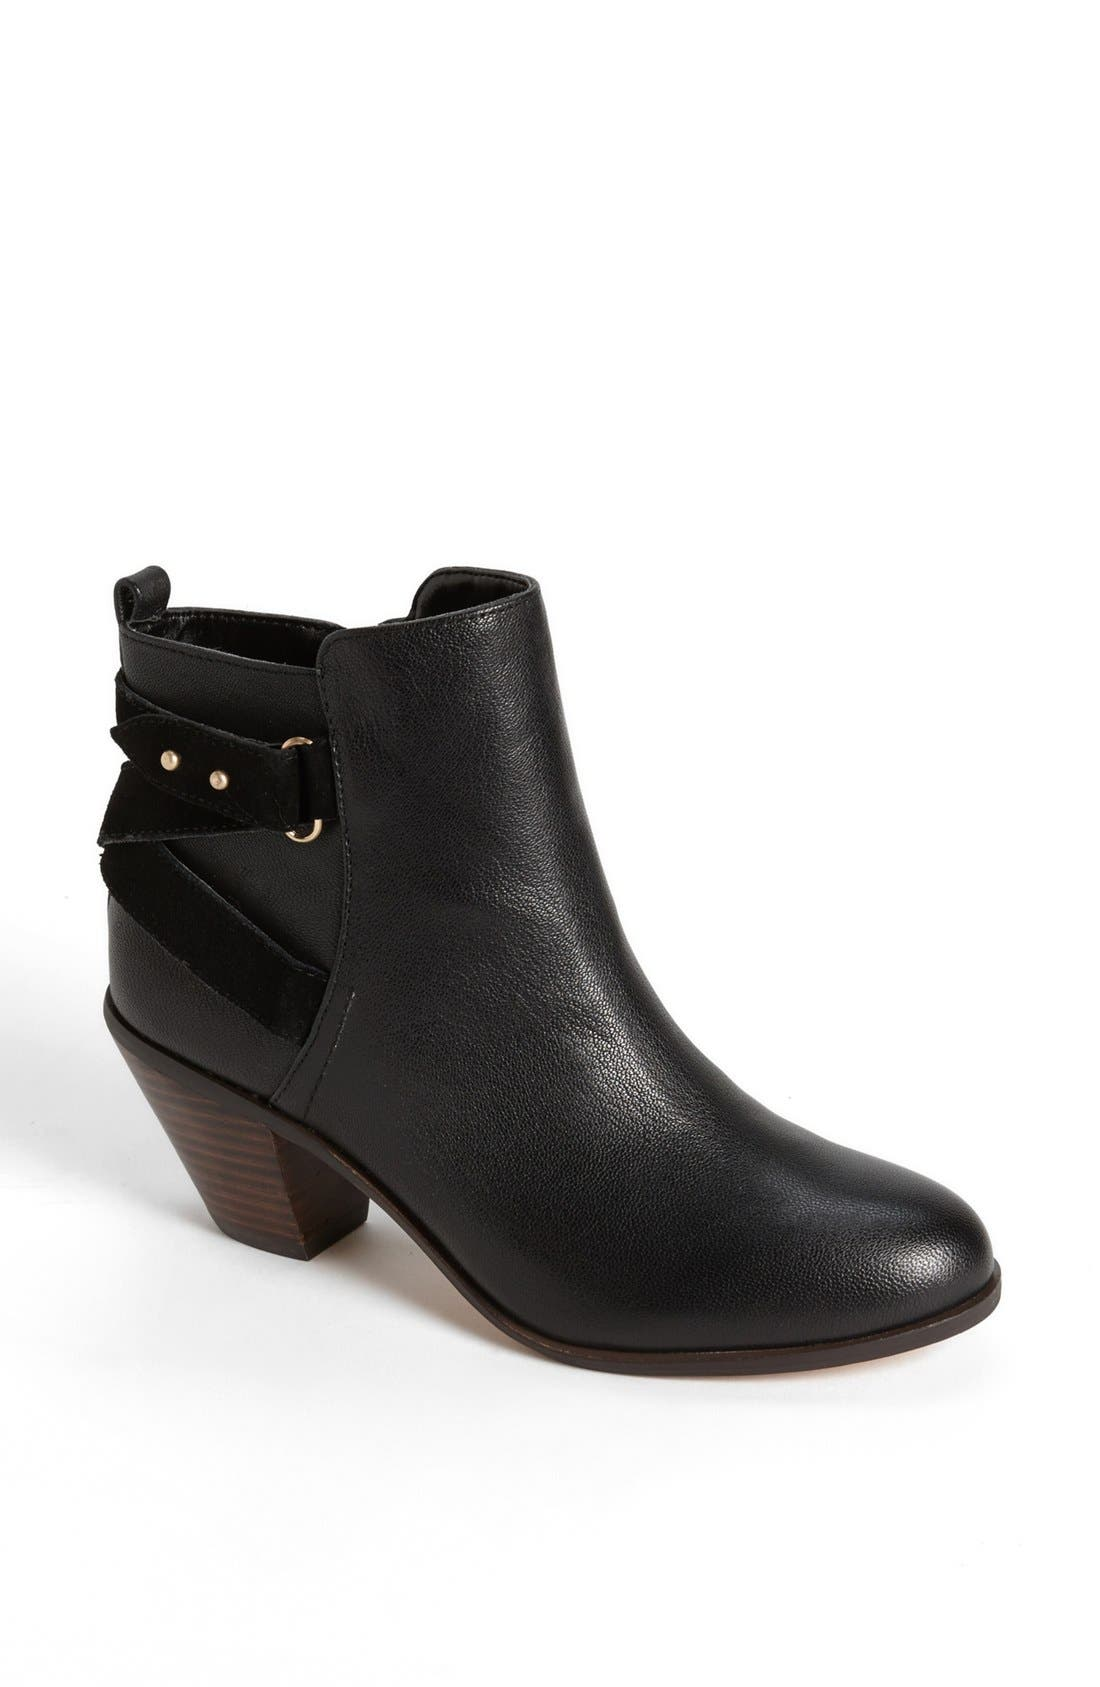 Main Image - Julianne Hough for Sole Society 'Idelle' Bootie